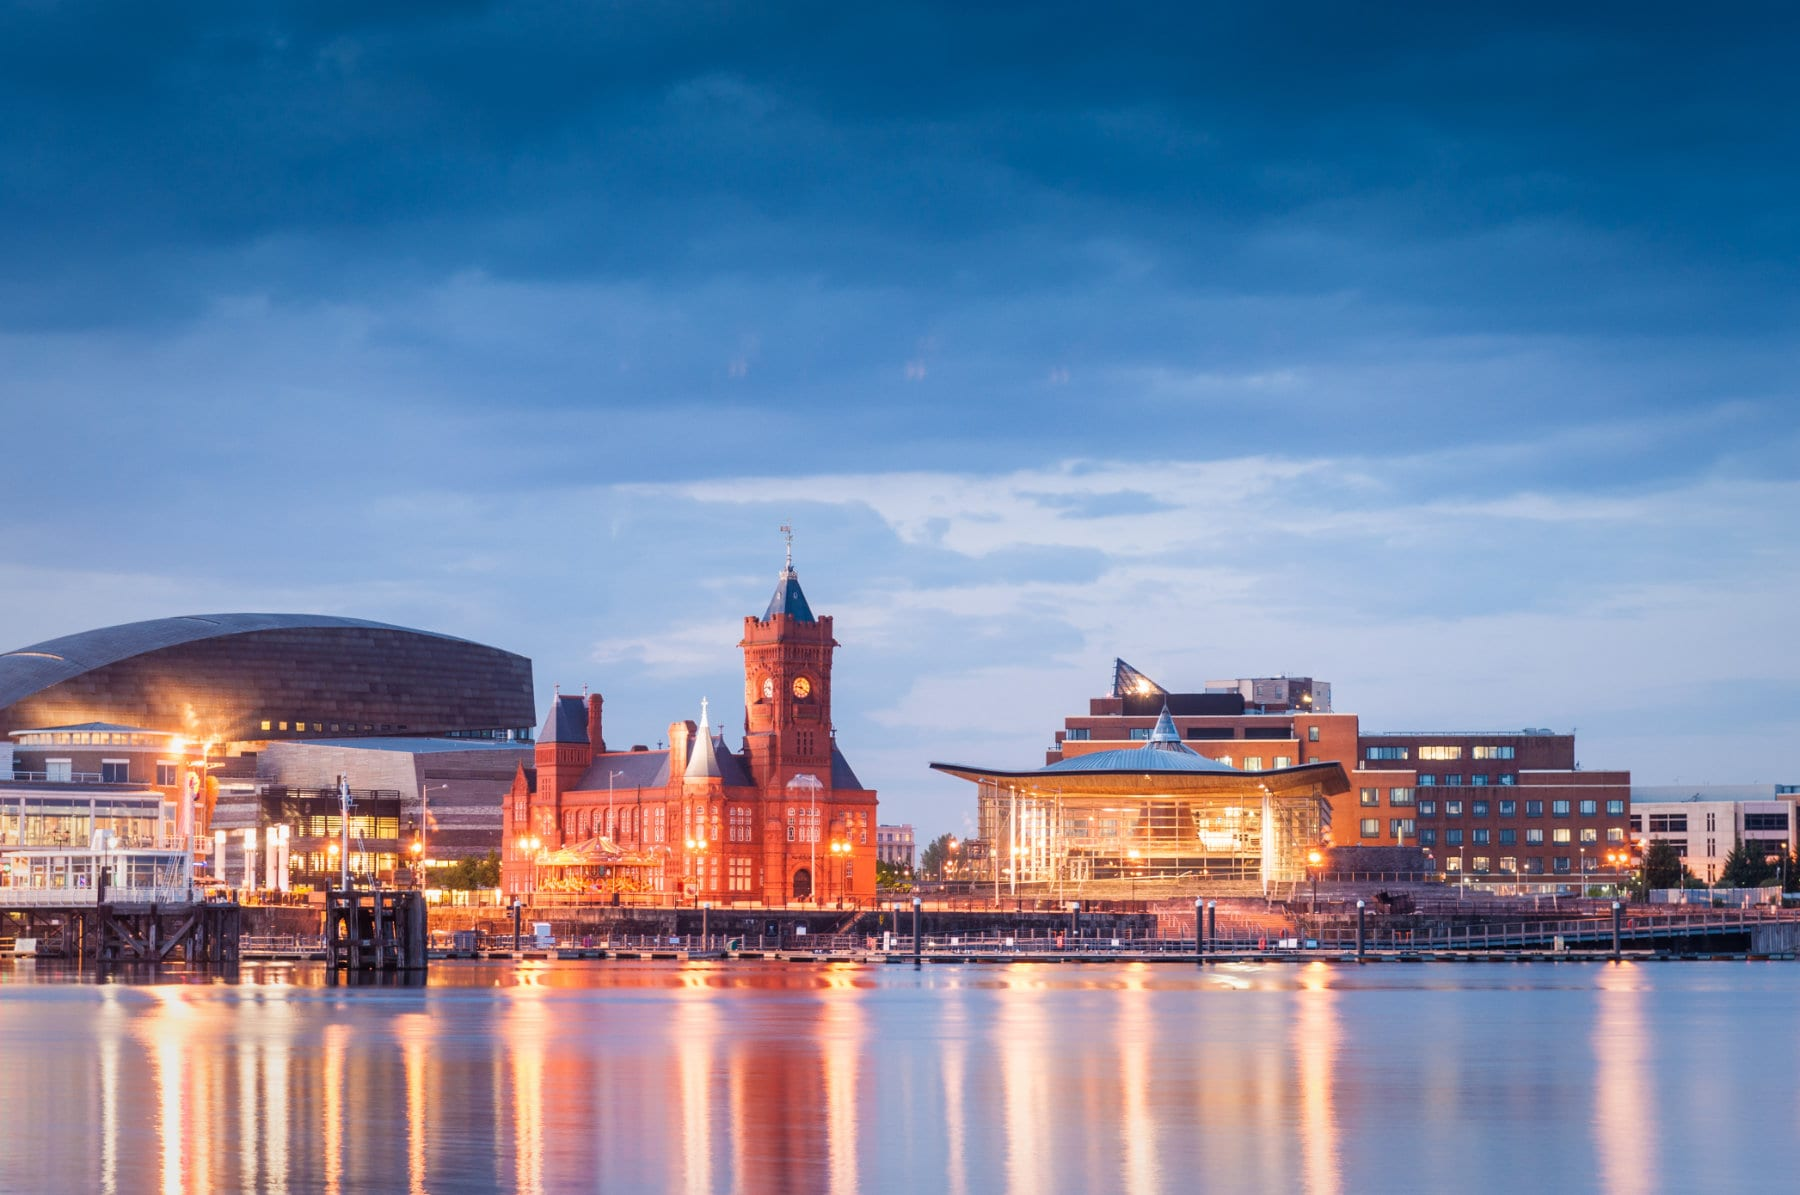 View of Cardiff across the river